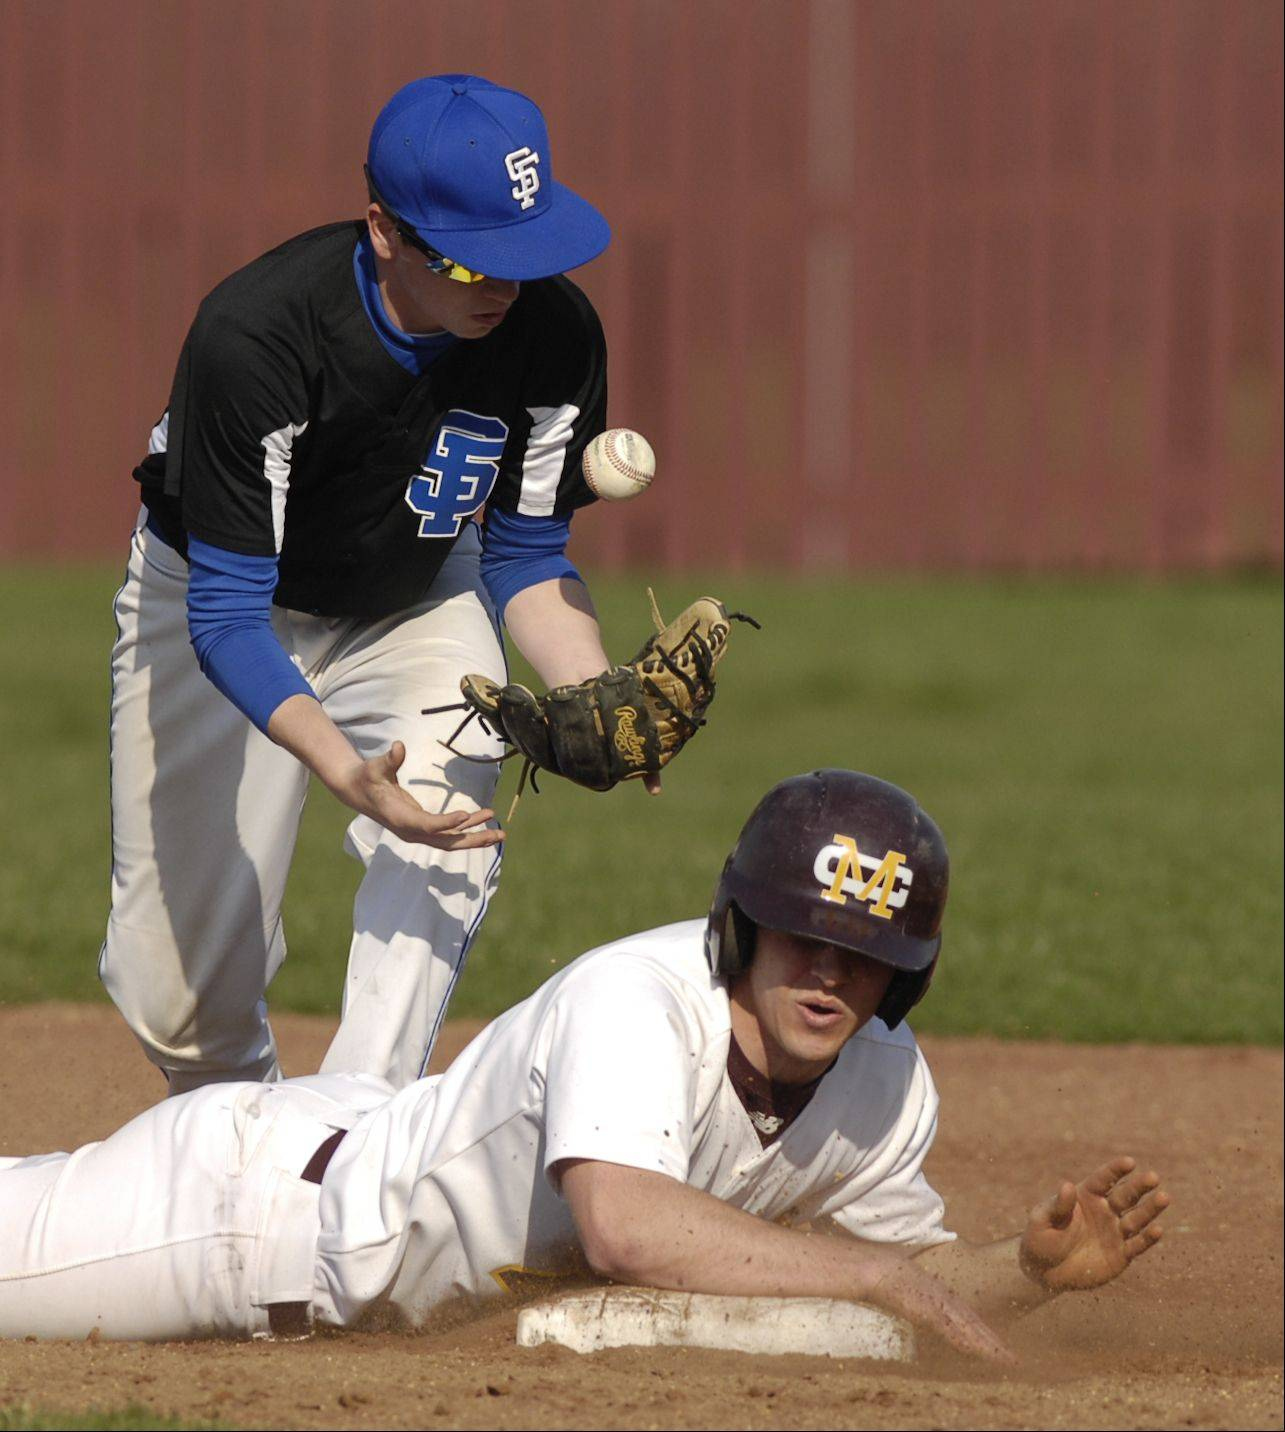 Montini's Alex Alcantara makes it back safely to second base as Jake Pestel of St. Francis bobbles the ball during Monday's baseball game in Lombard.